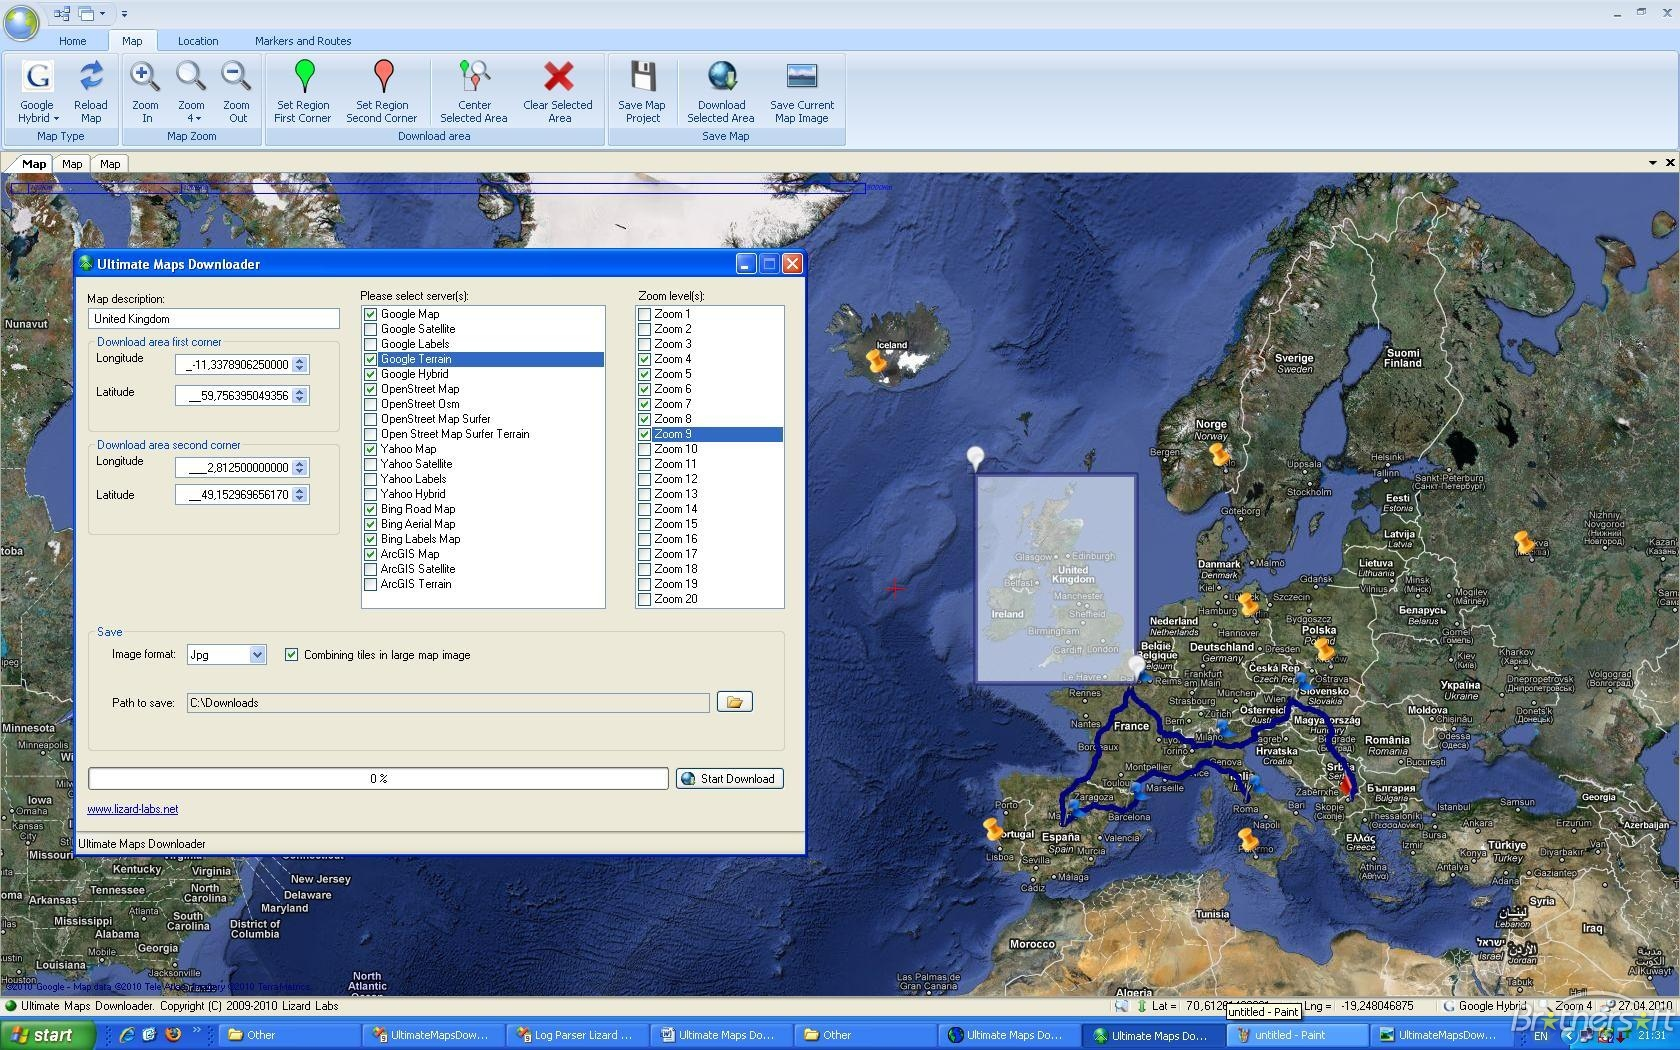 Download & save google maps as images on pc.